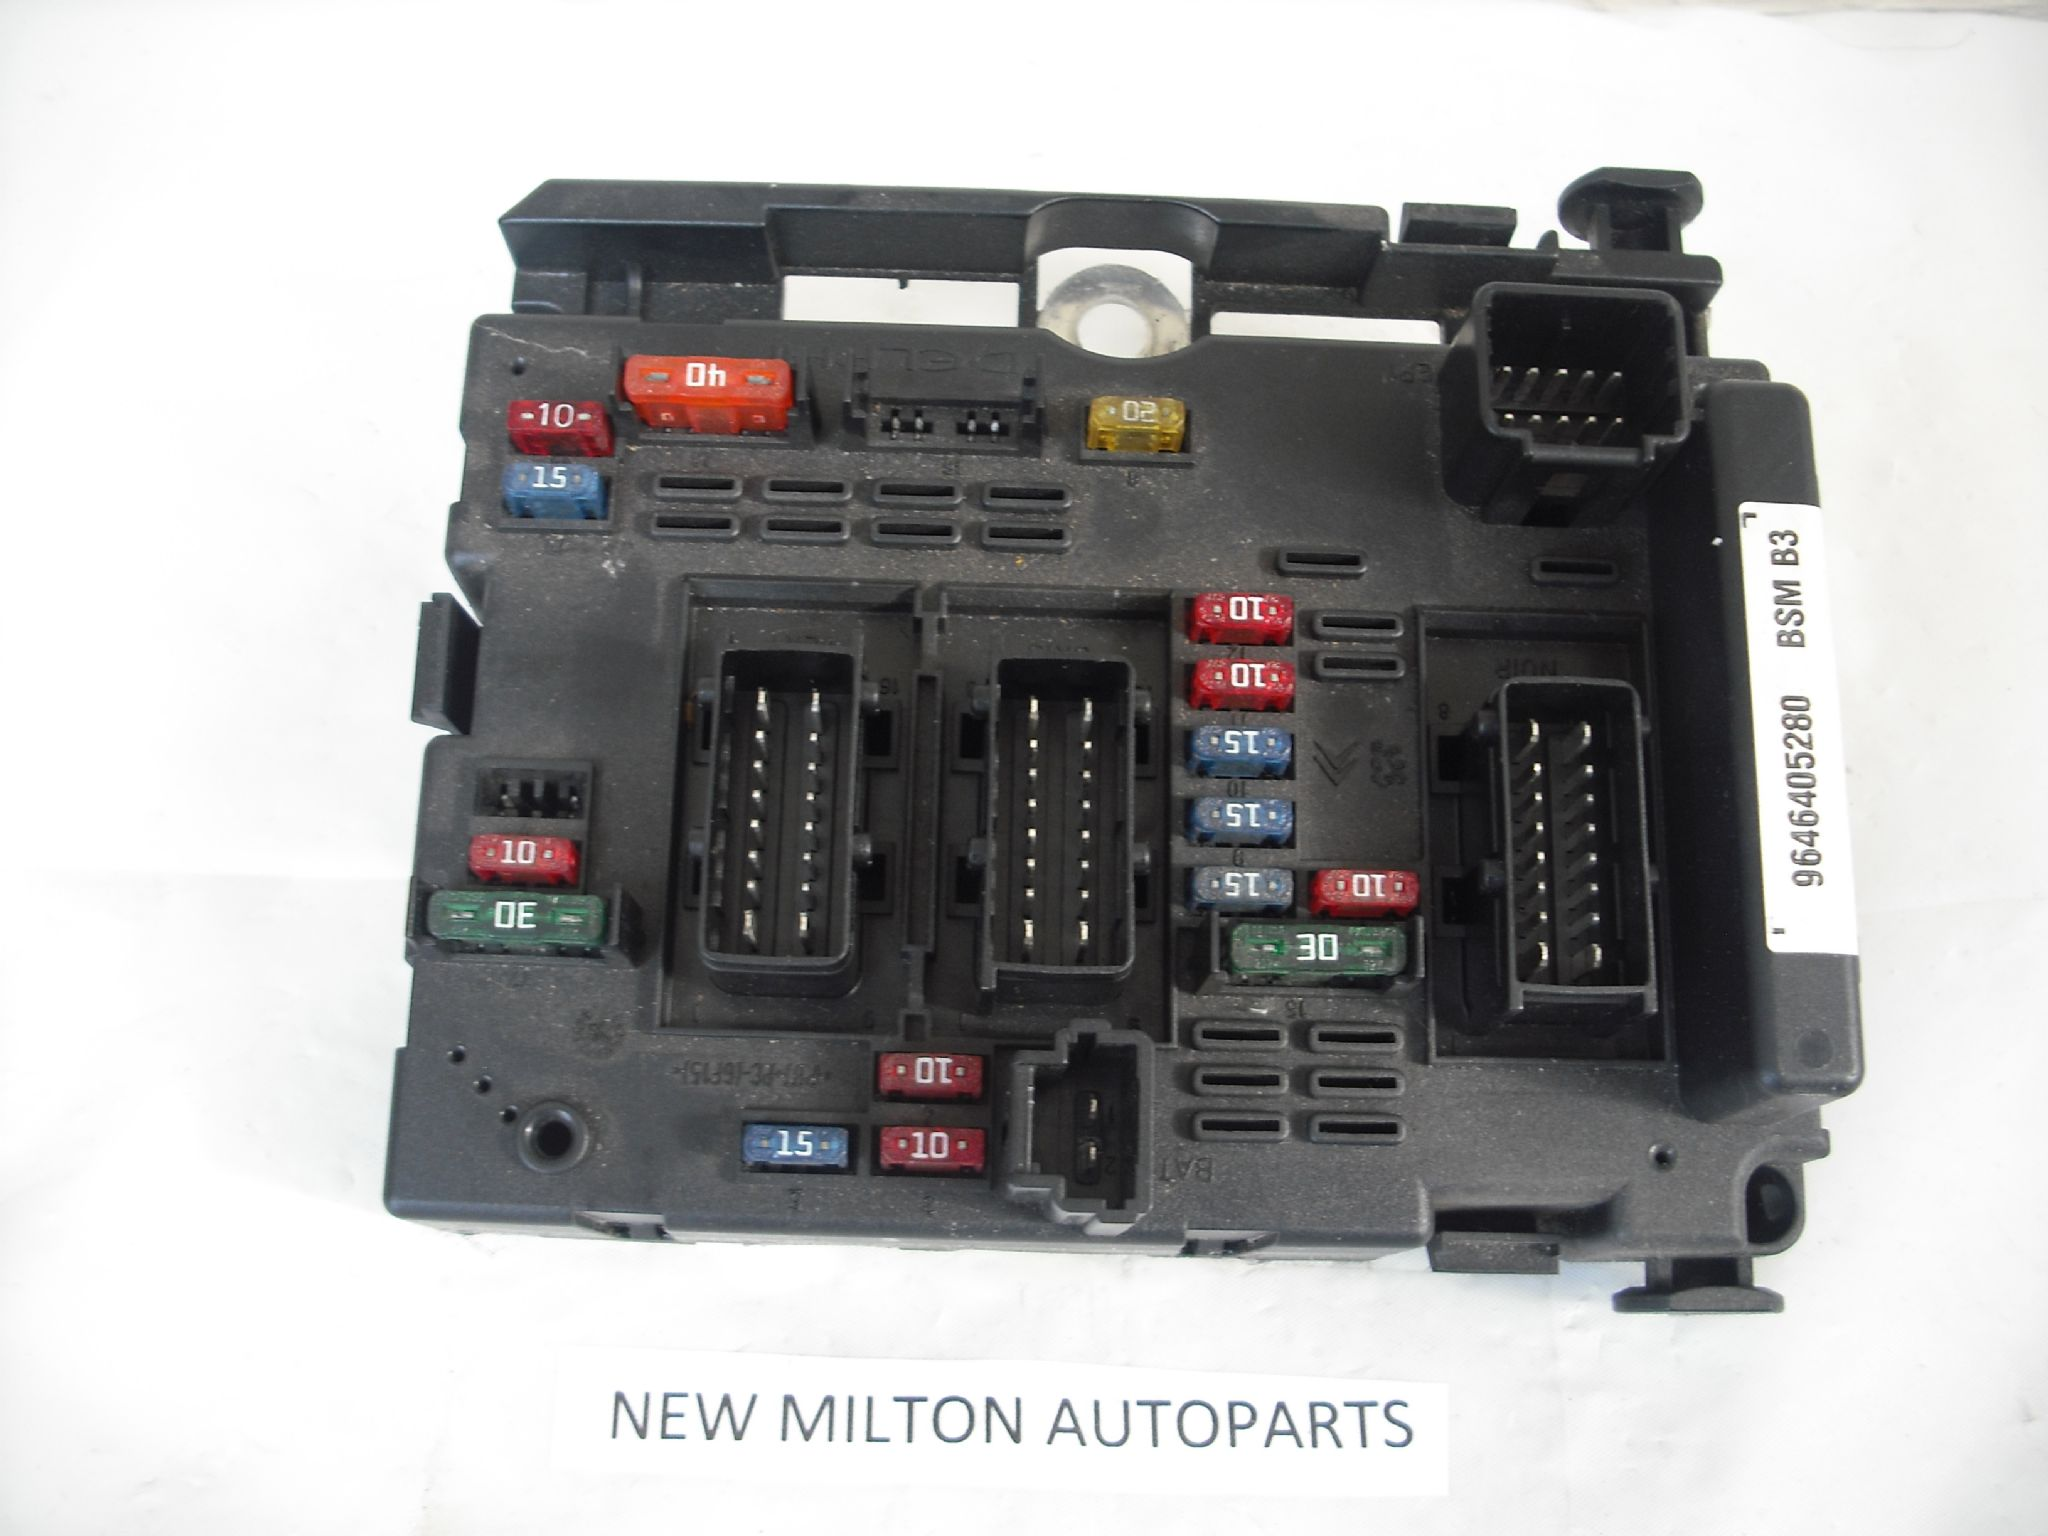 Peugeot 206 Fuse Box Buzzing : A genuine peugeot engine bay fuse box control module